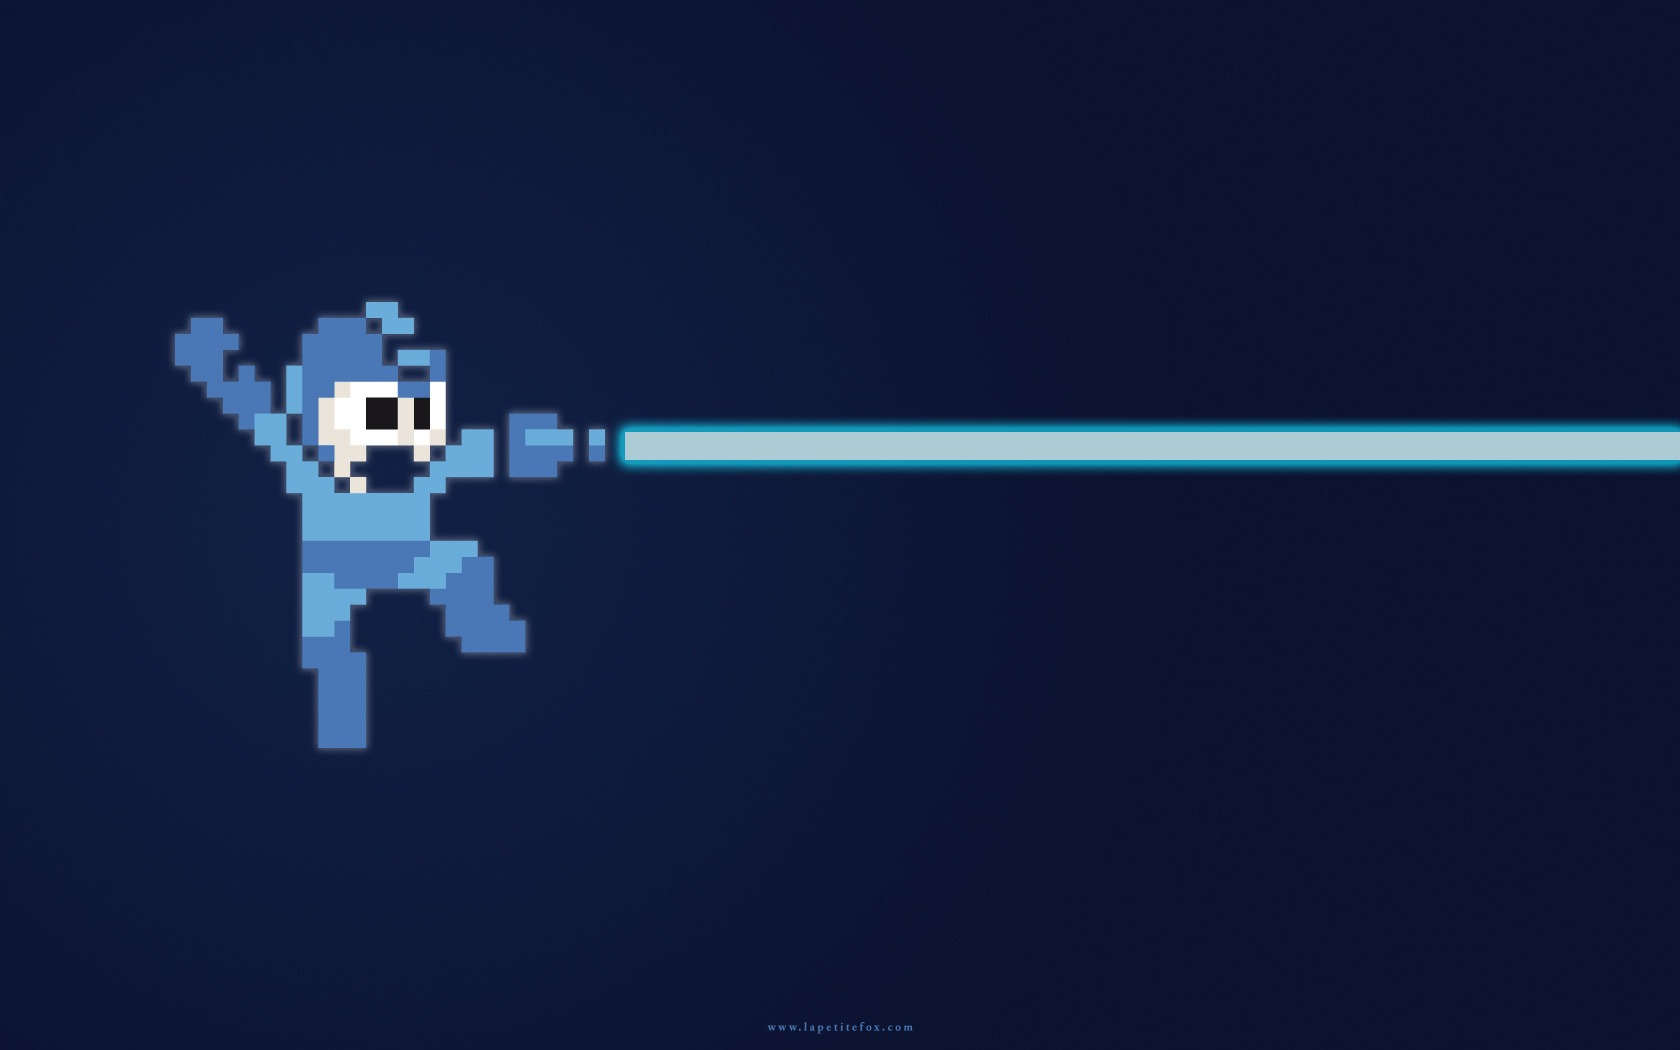 Capcom Teases More Mega Man